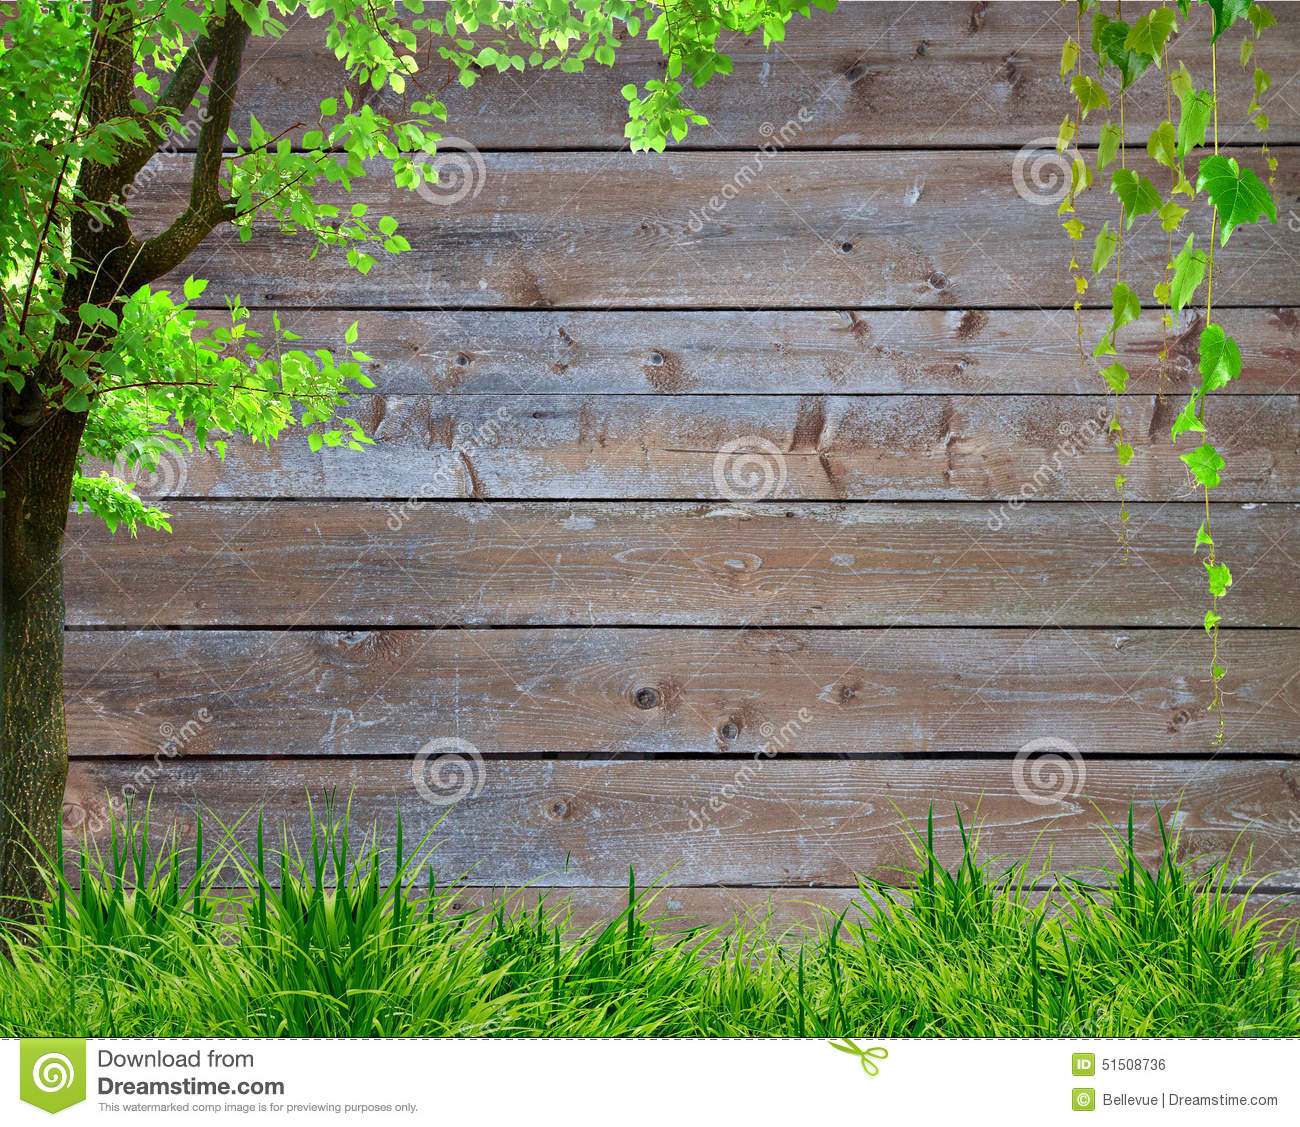 Spring green grass and leaf plant over wood fence background